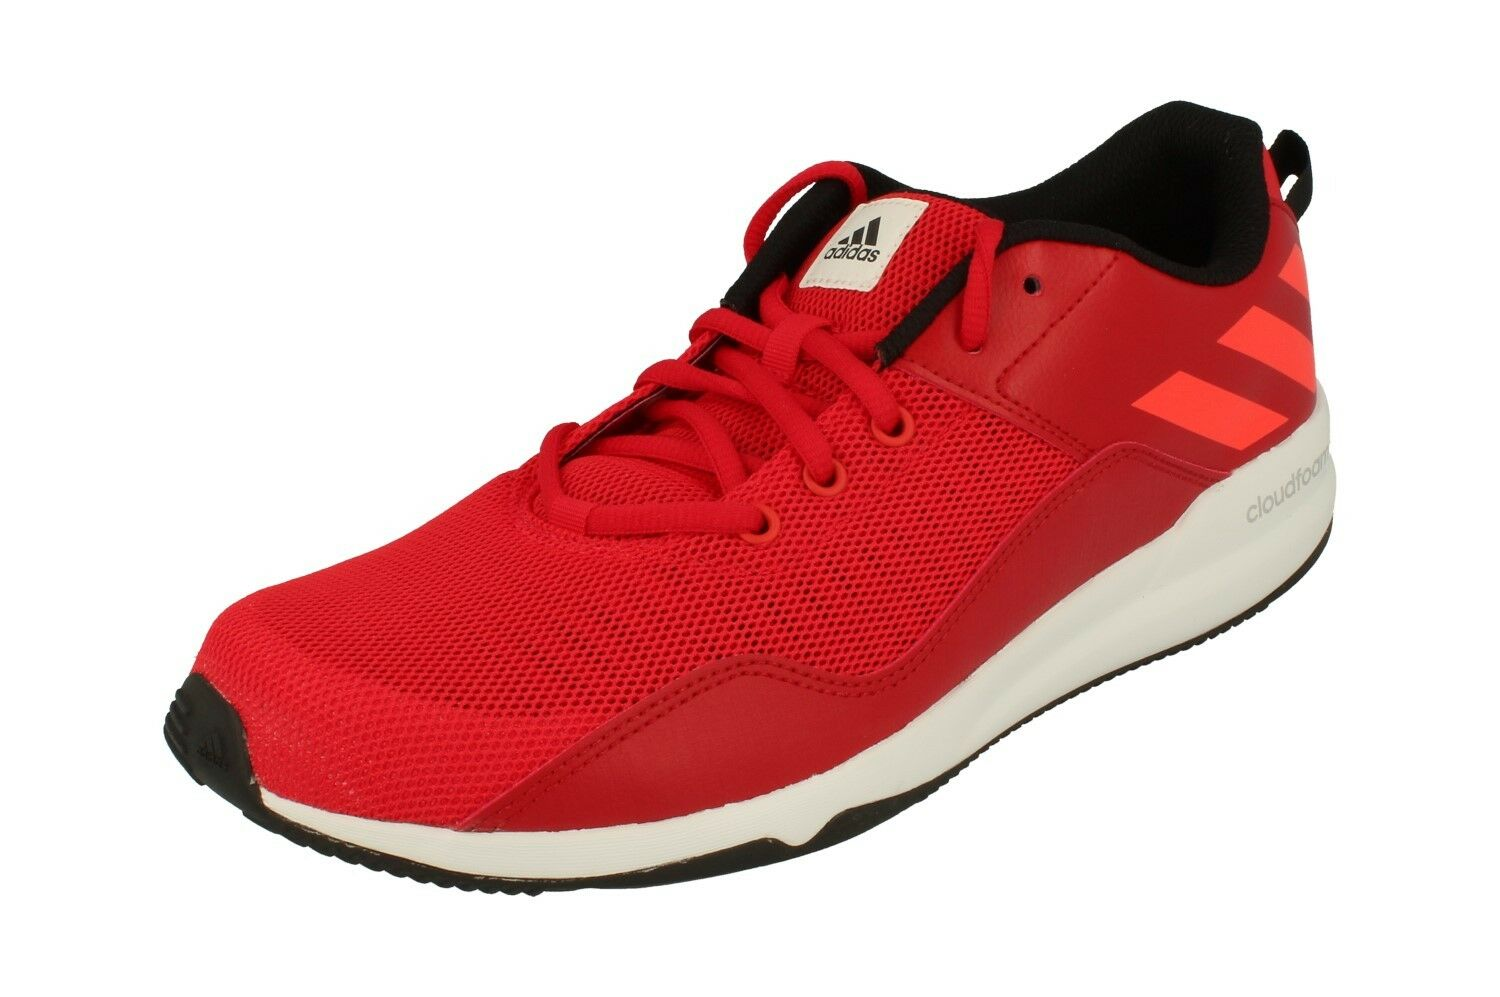 Adidas Trainers Crazymove Cf Mens Running Trainers Adidas Sneakers AQ6237 4339e9